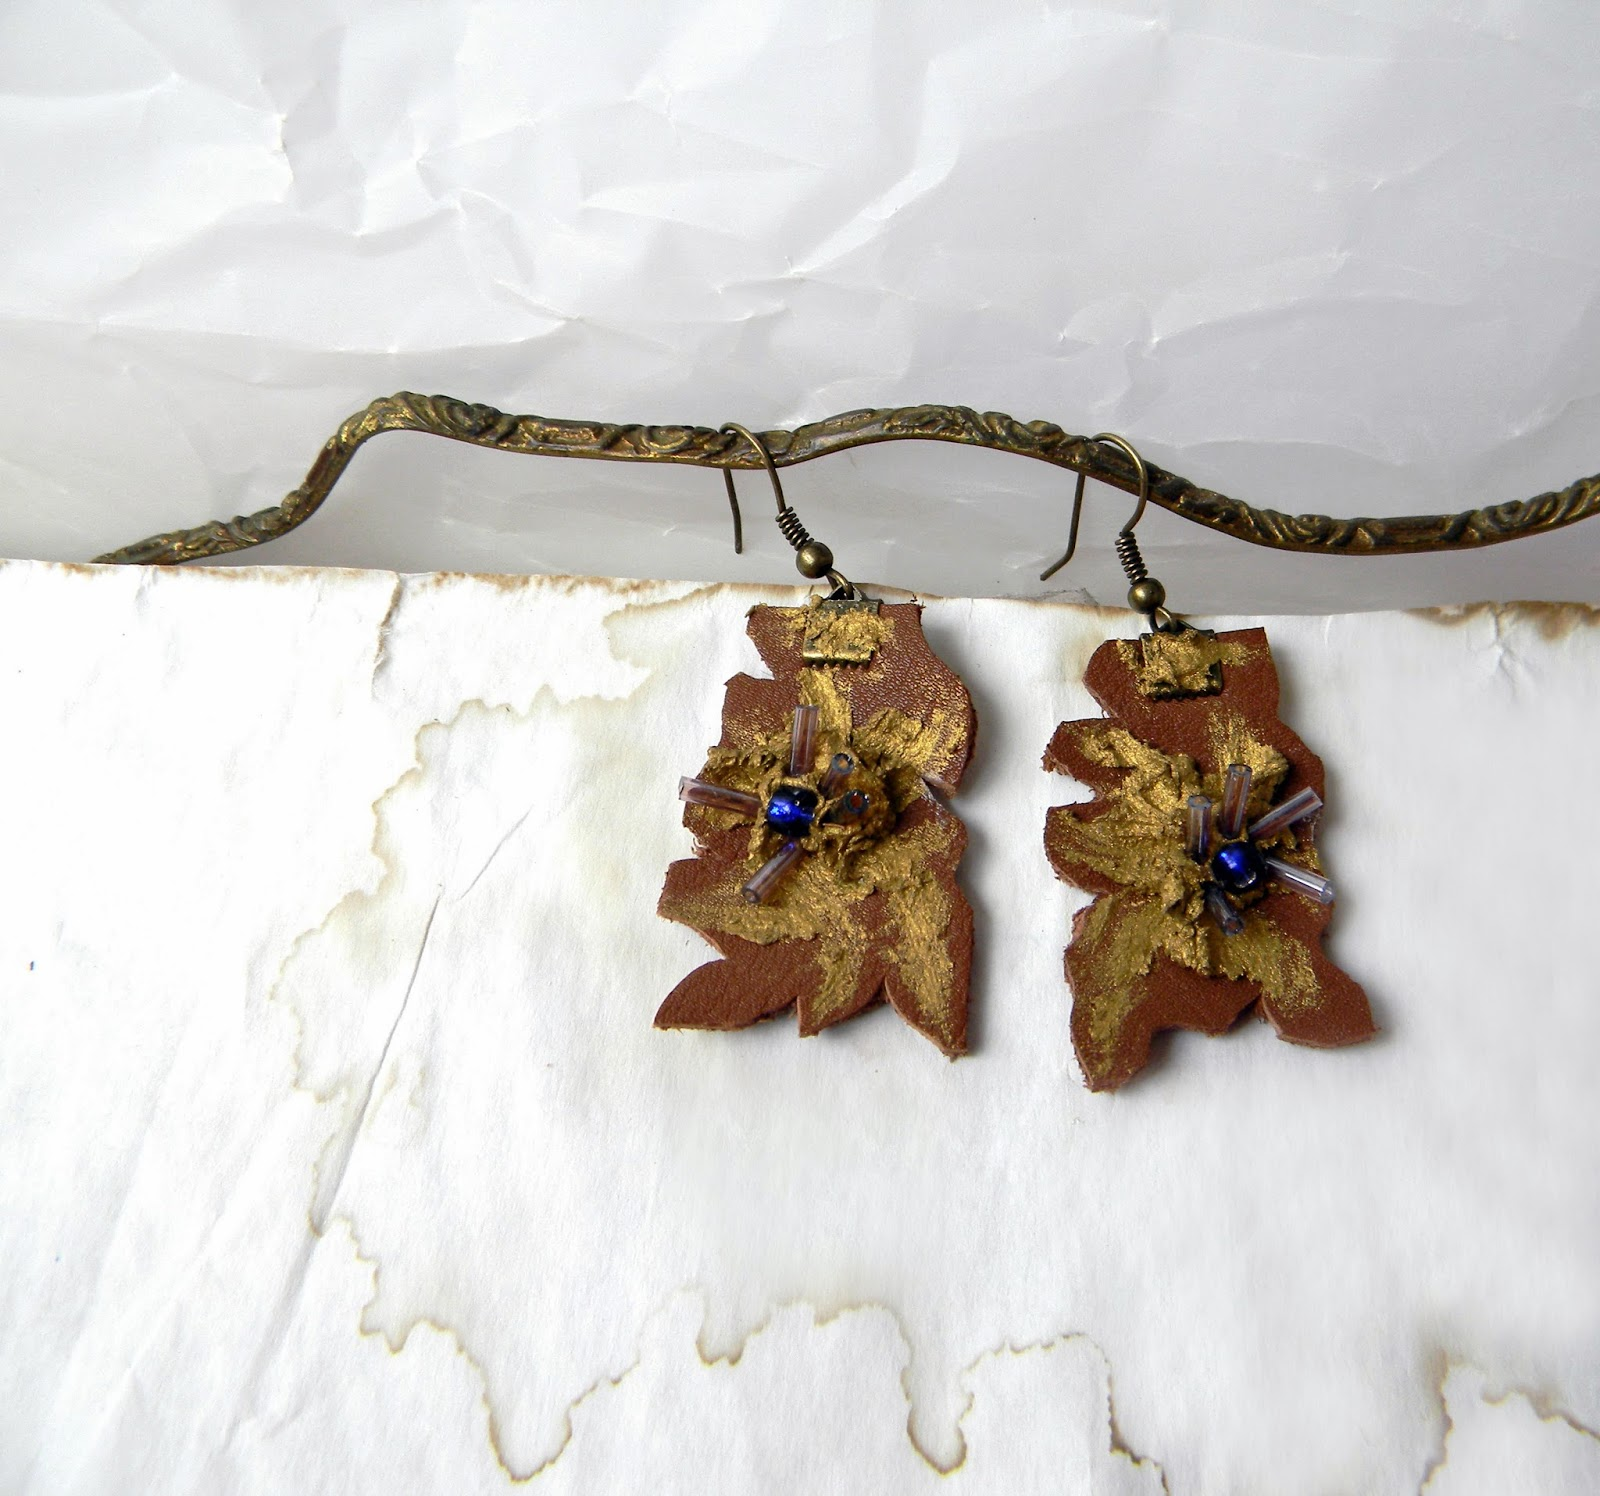 Mocha Brown Leather Earrings, Hand Cut Stylized Leafs Earrings with Blue Beads and Lilac Glass Beads Decor